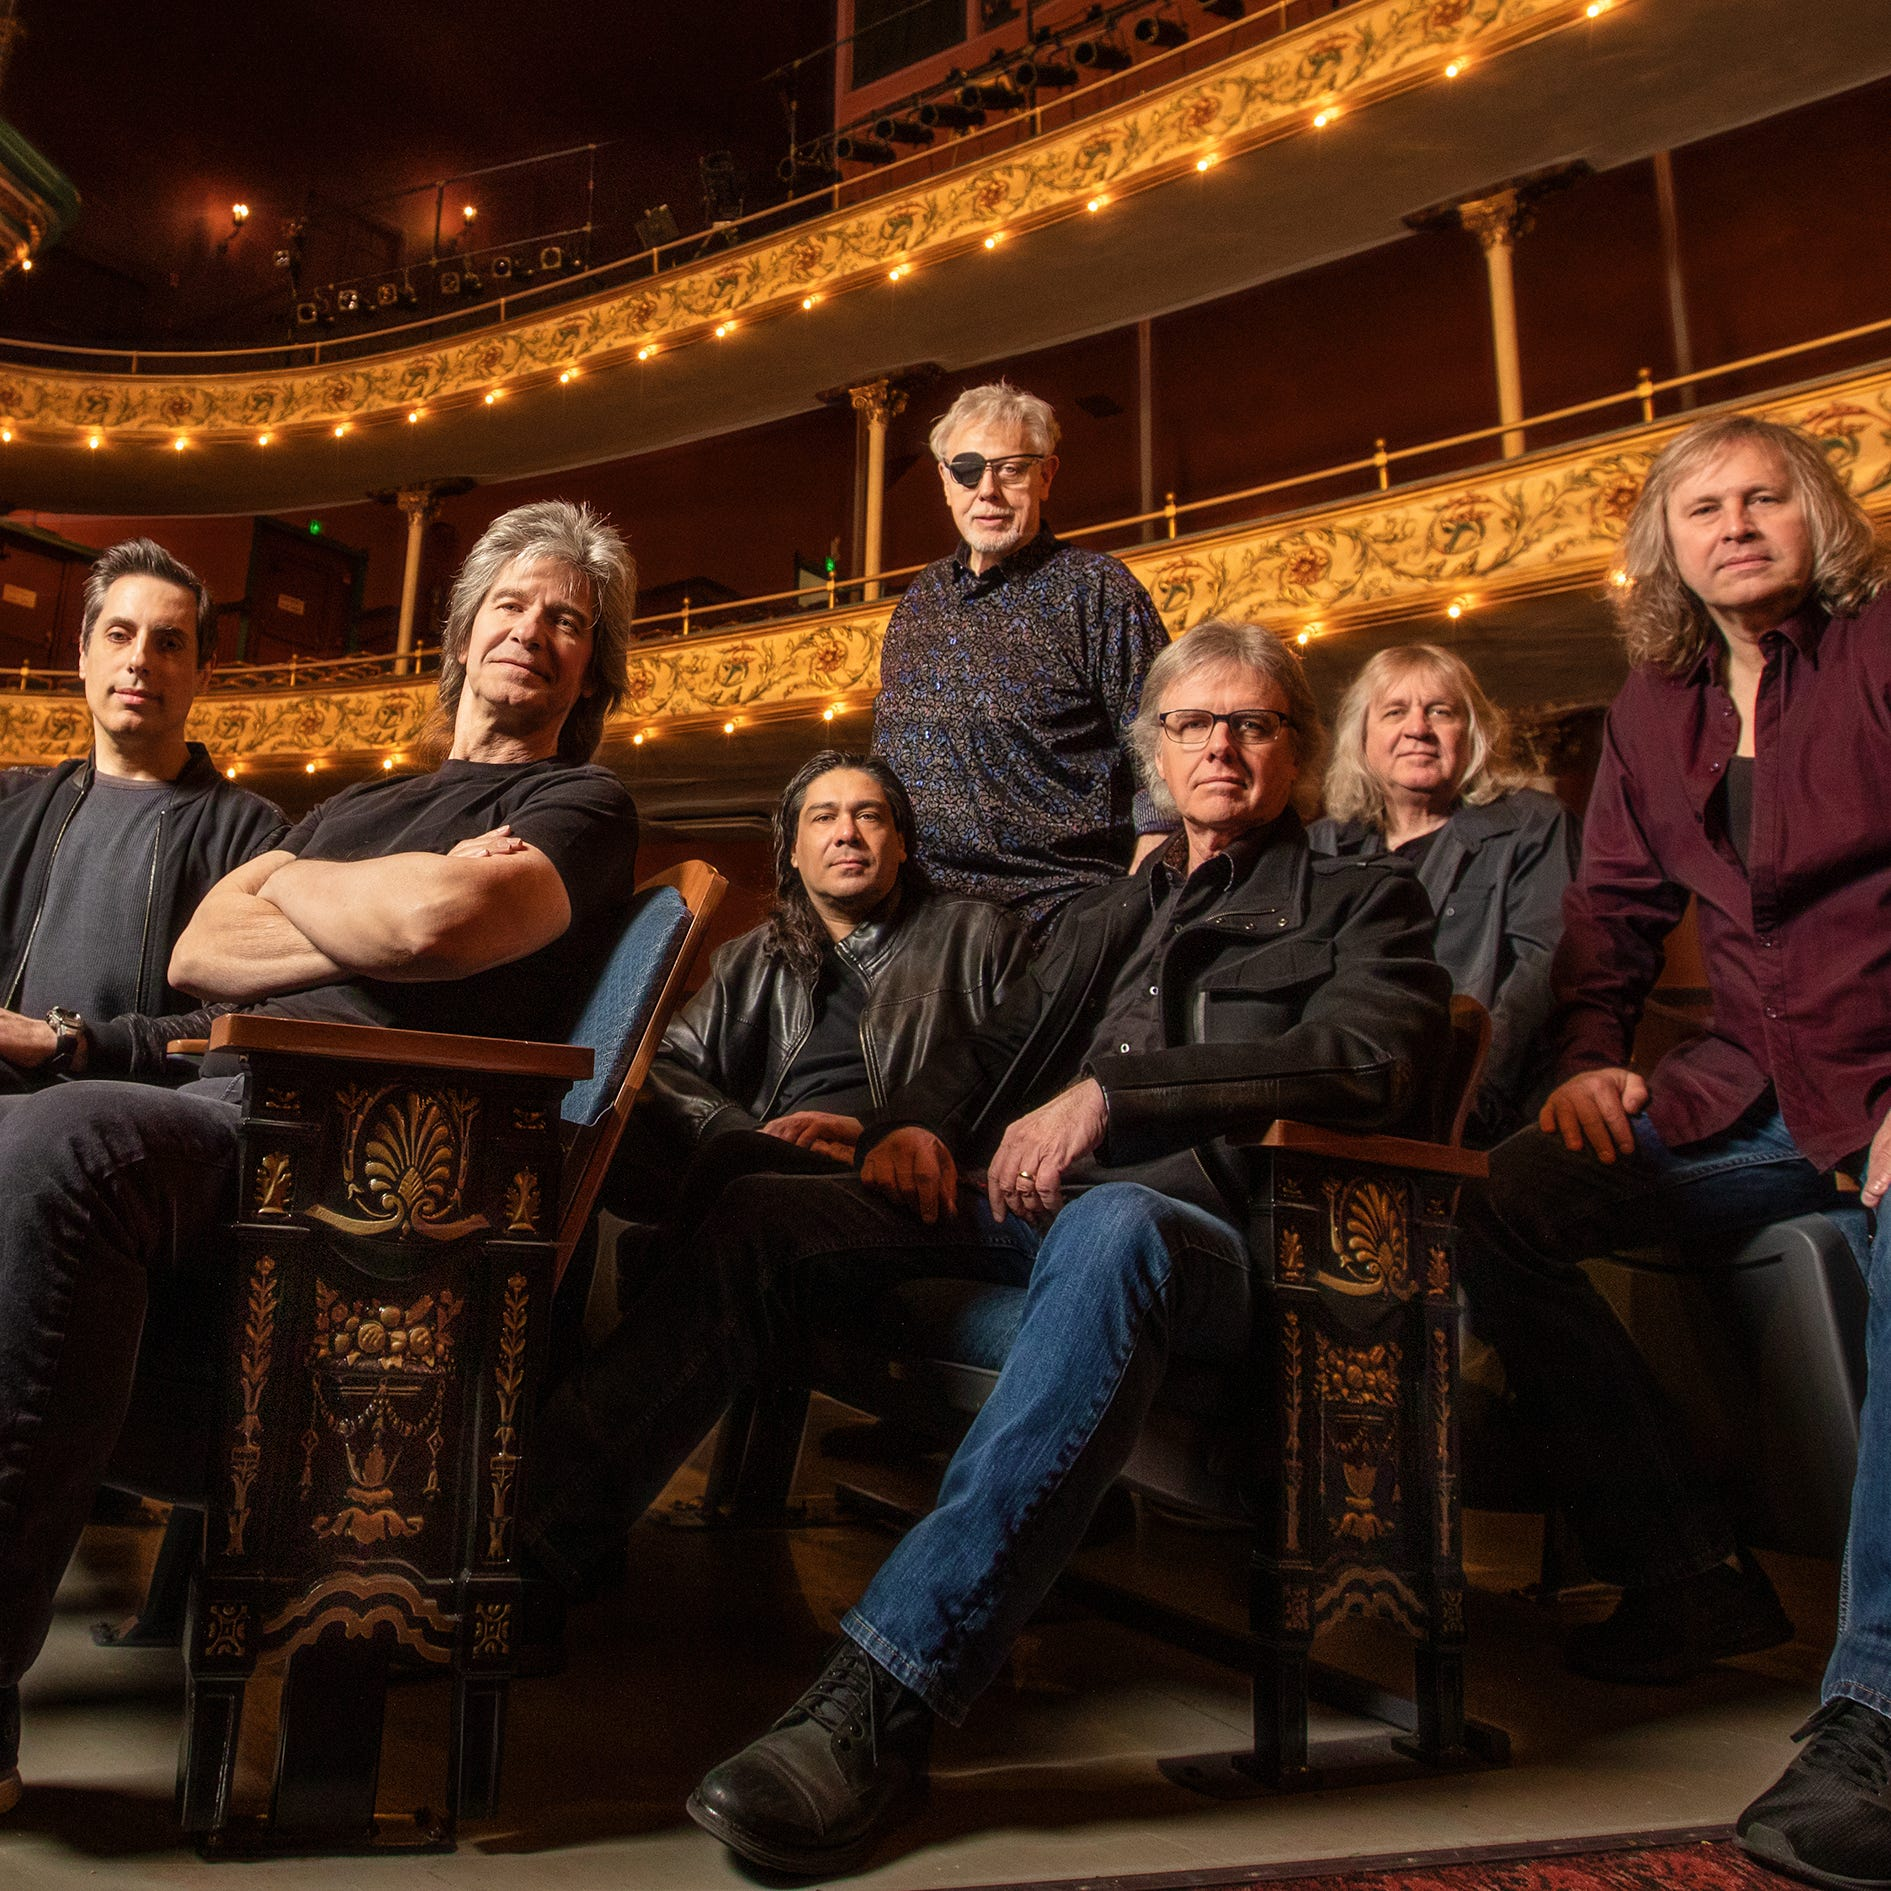 Kansas returns to Hoyt Sherman to play iconic 'Point of Know Return' in its entirety